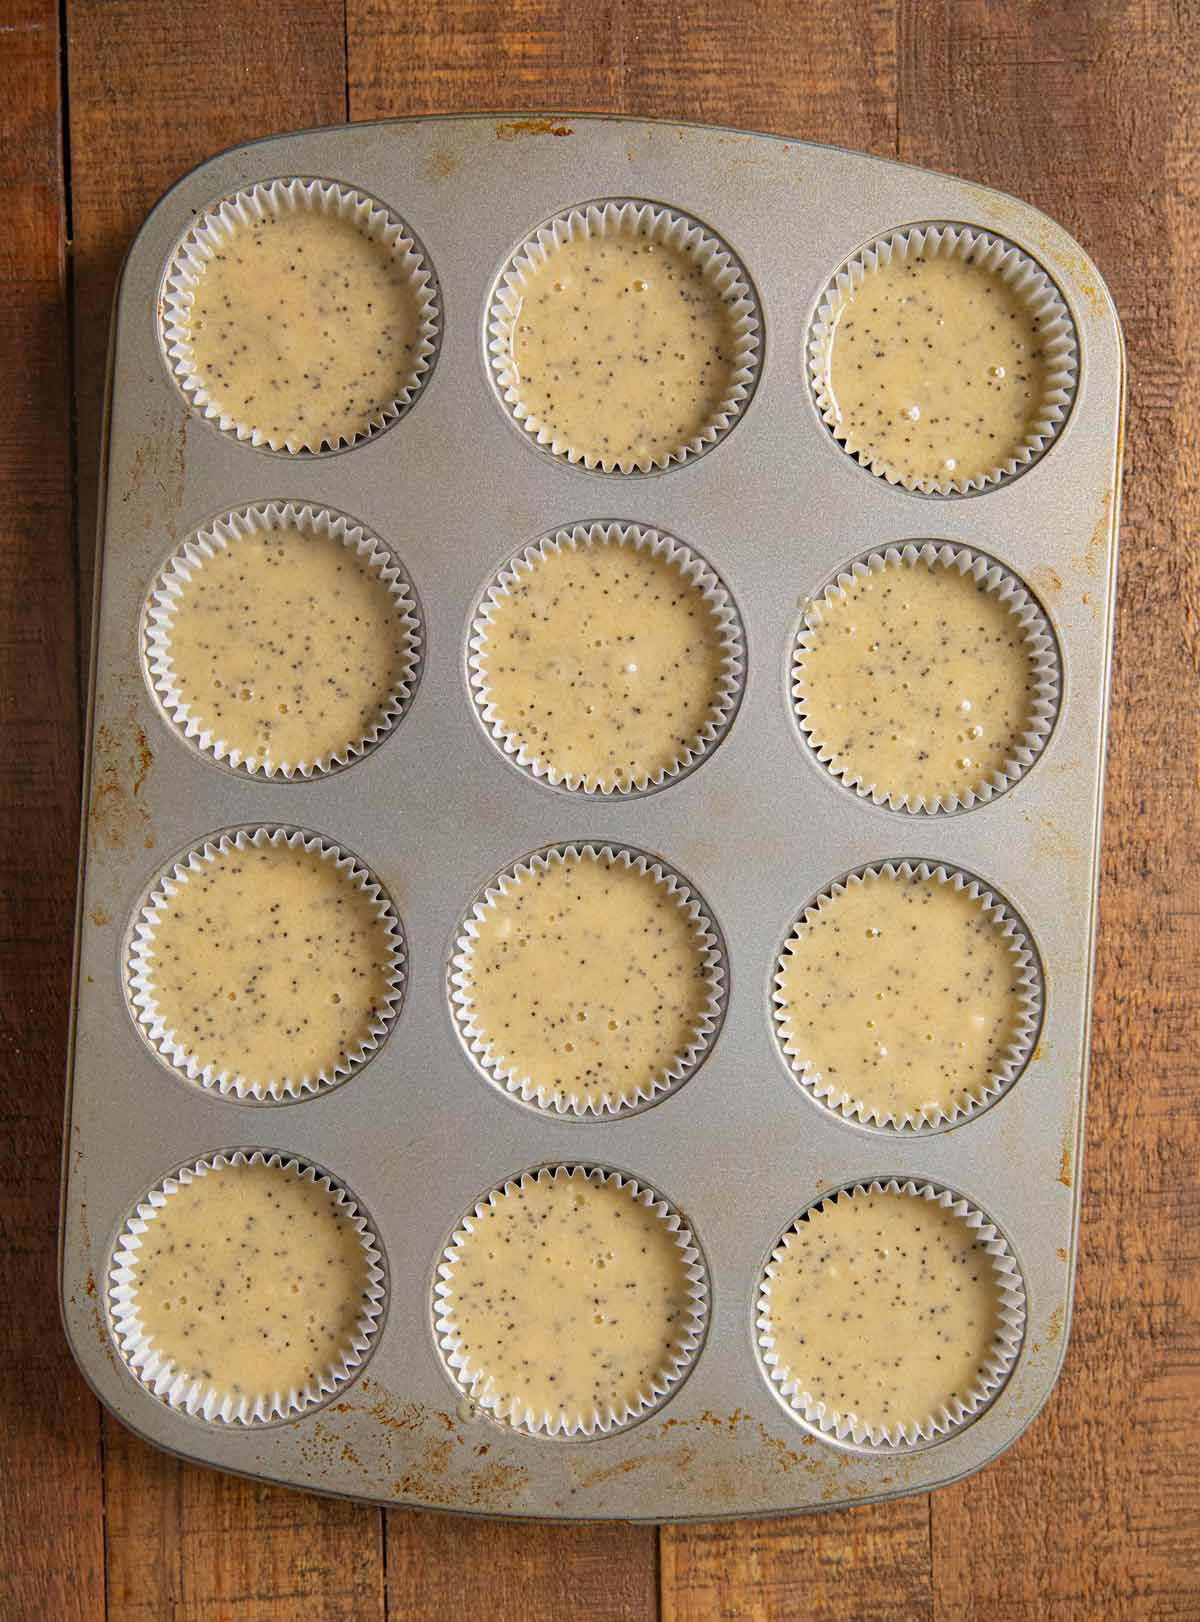 Poppy Seed Muffins in muffin tin before baking